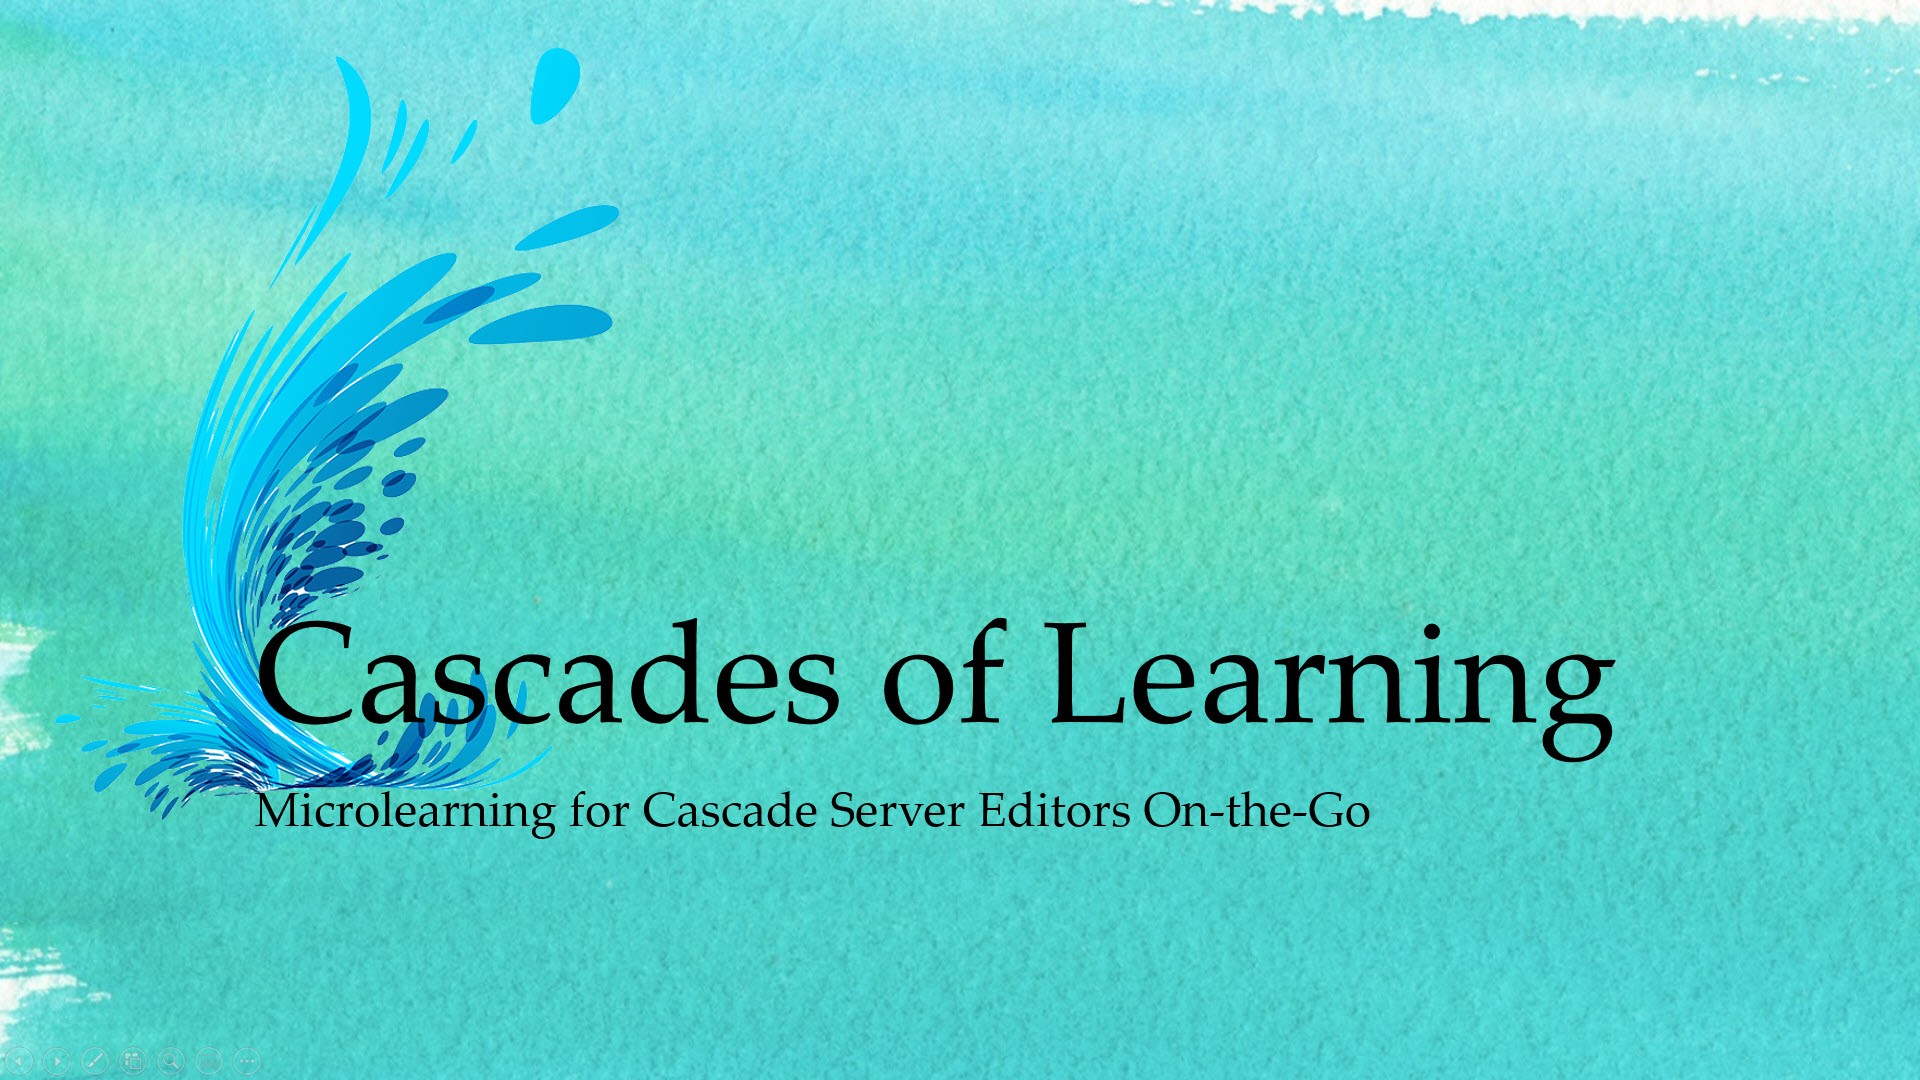 Cascades of Learning